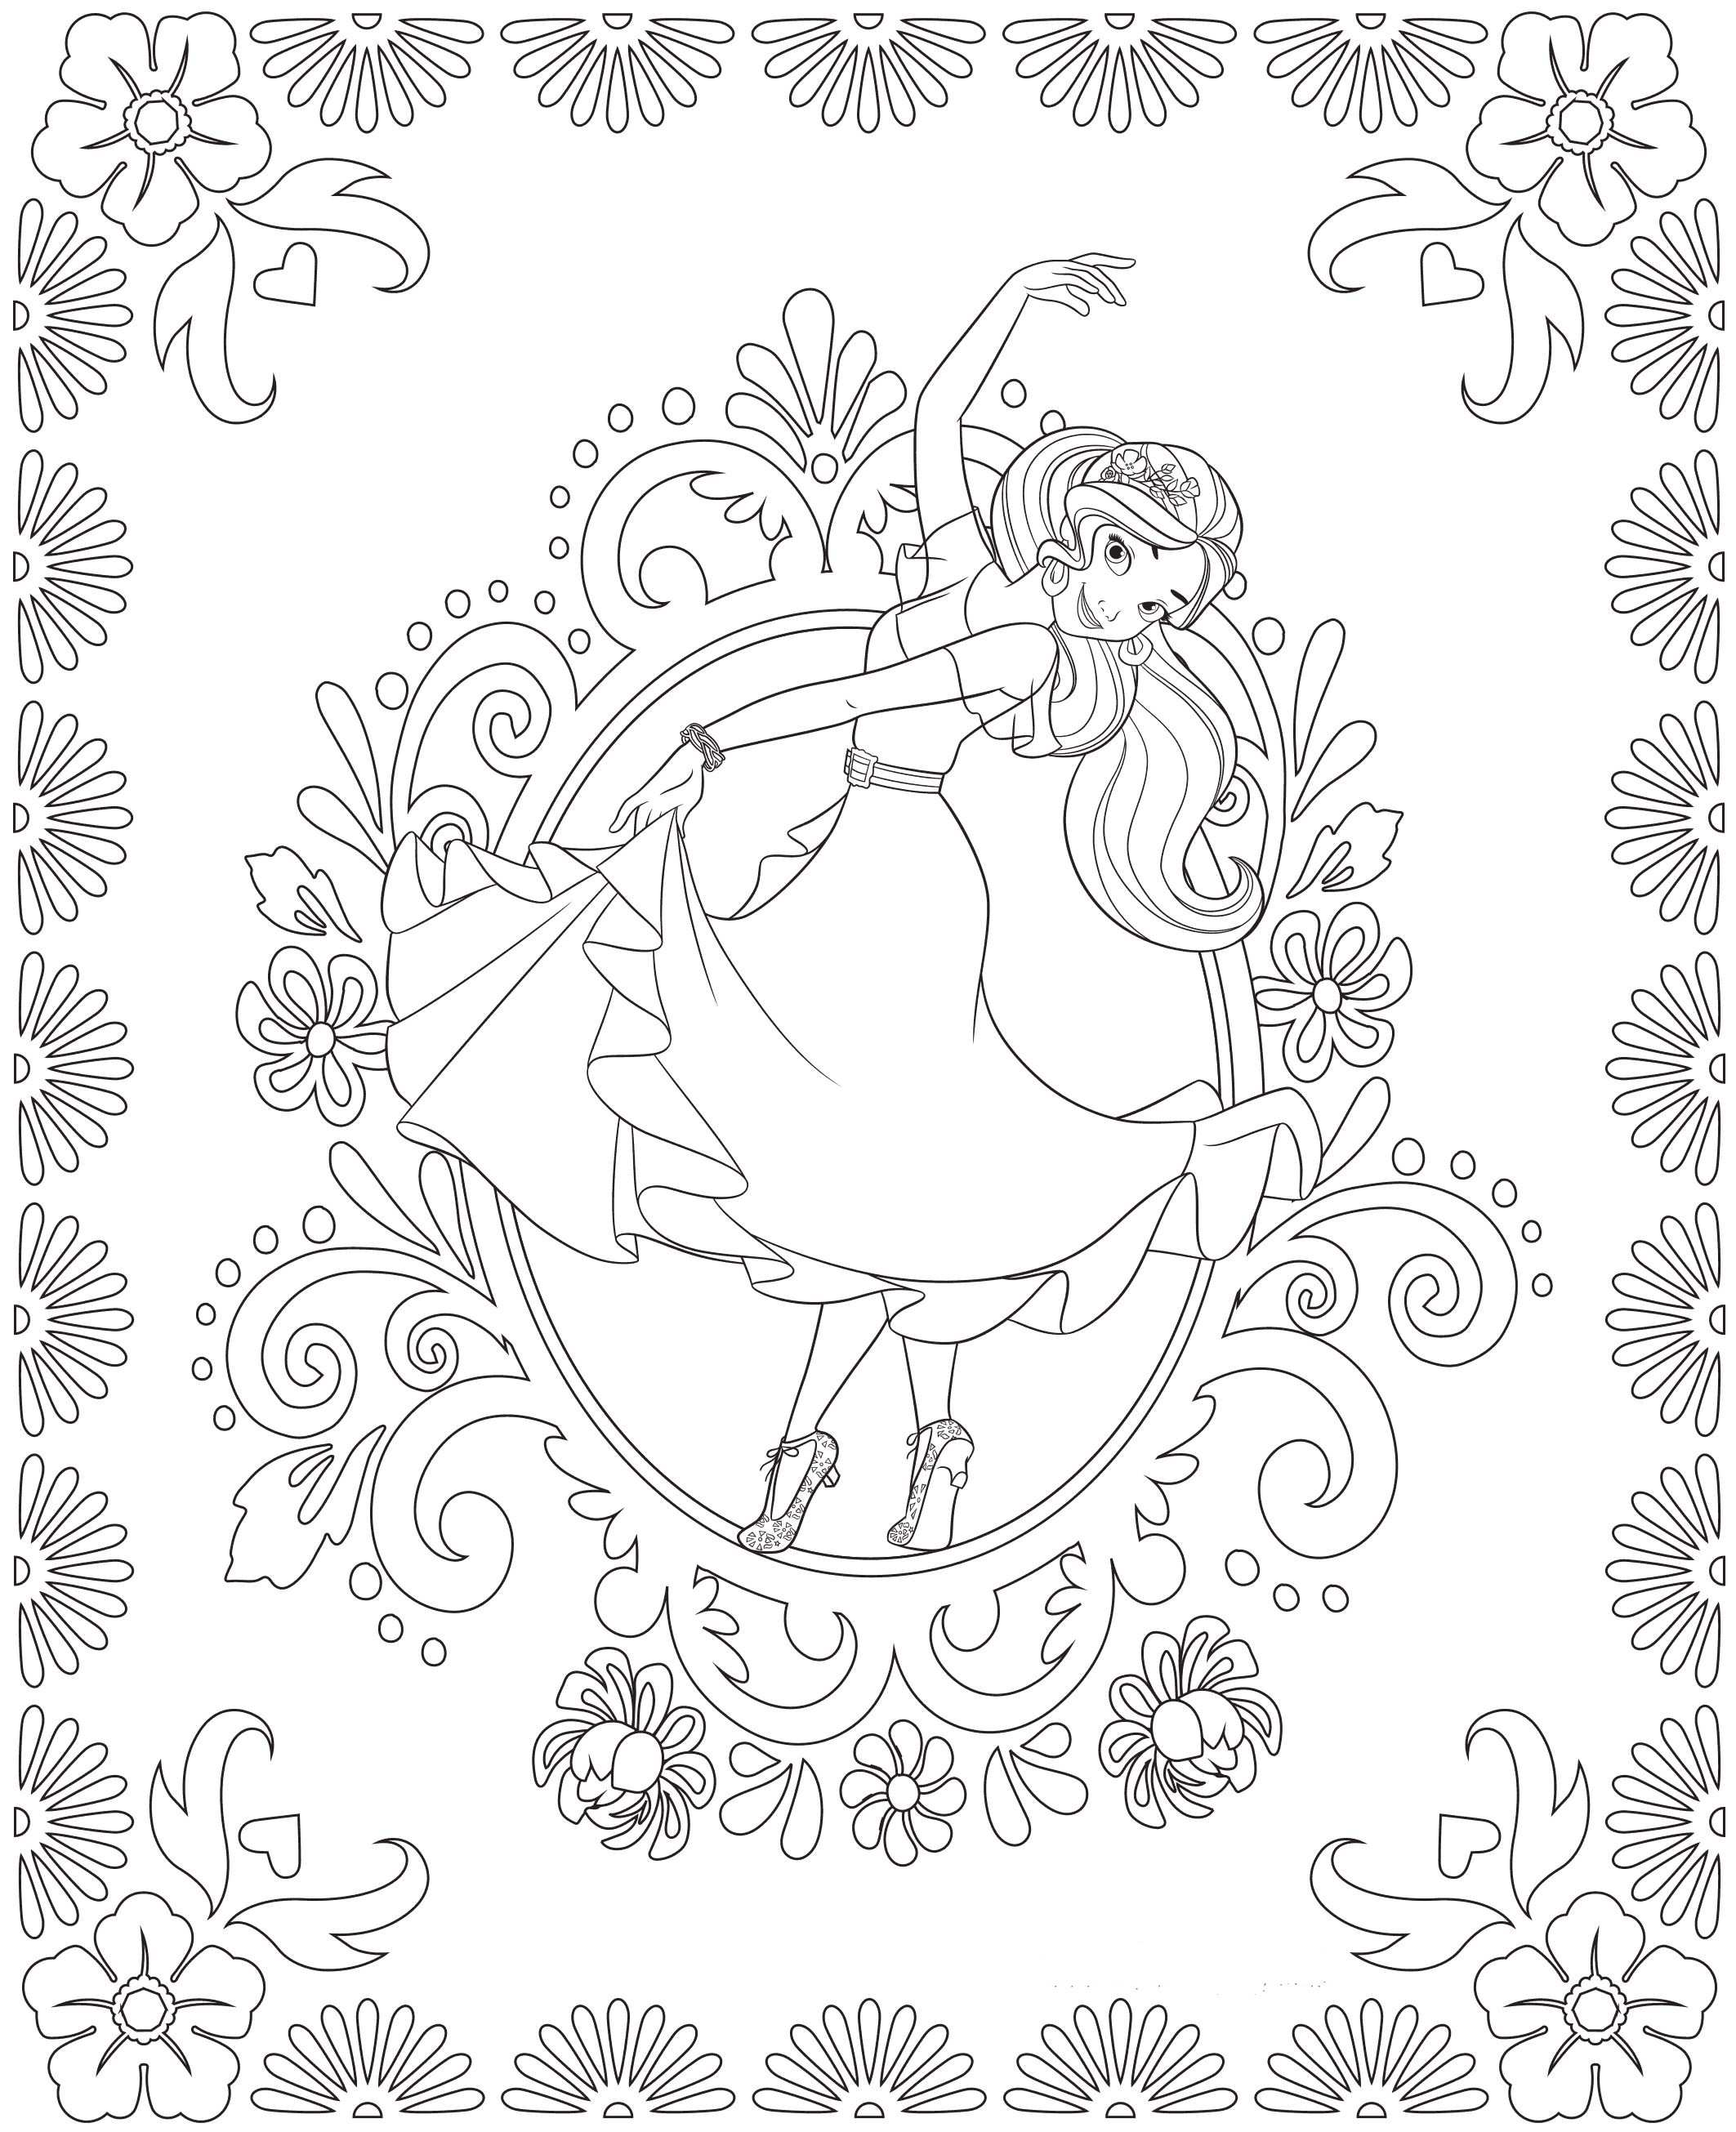 Kids-n-fun.com | 44 coloring pages of Elena of Avalor